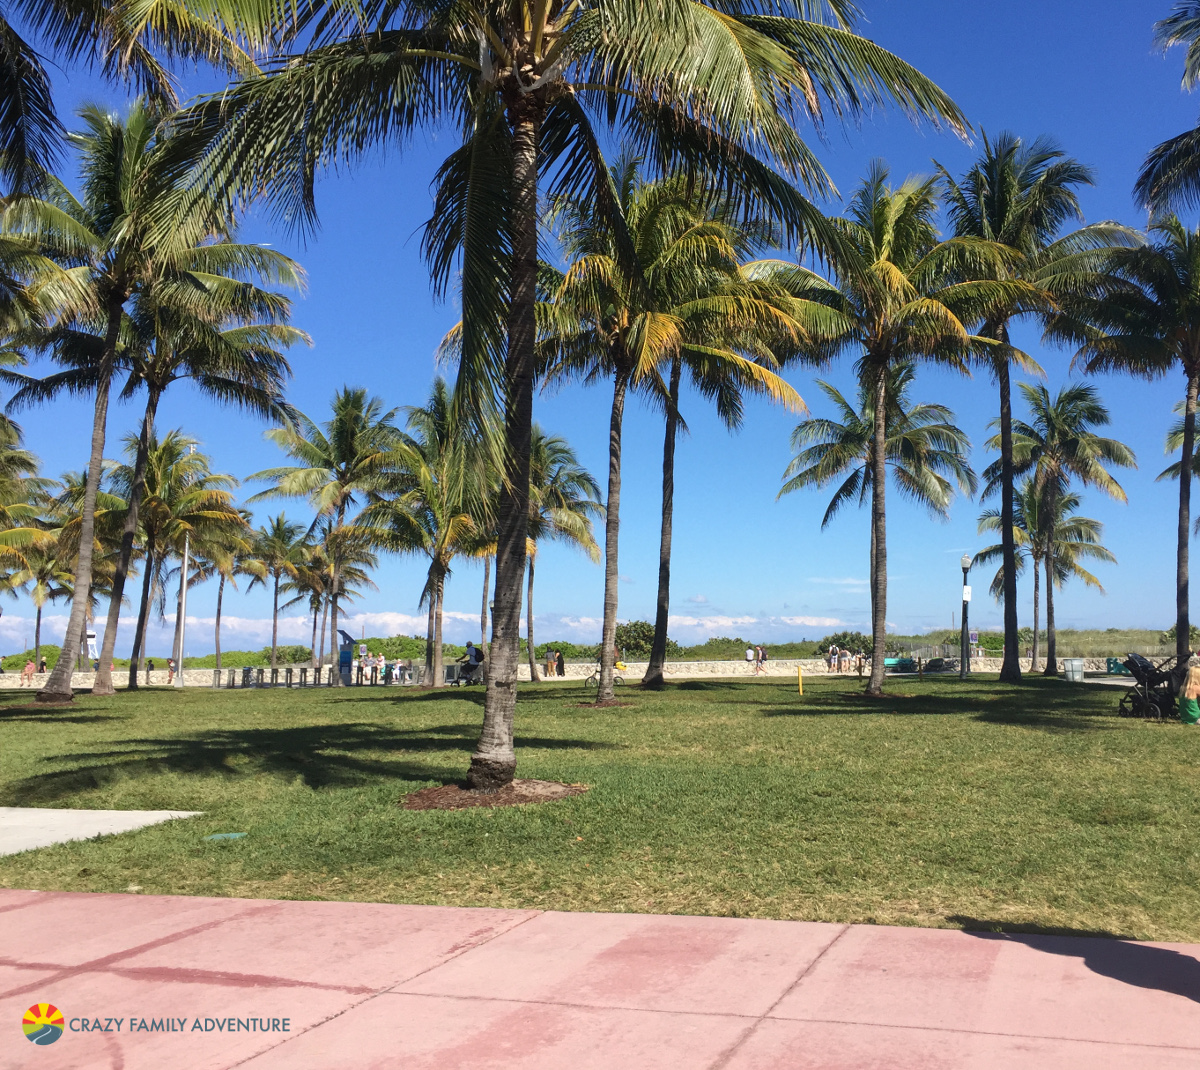 7 Things To Do In Miami With Kids - Crazy Family Adventure